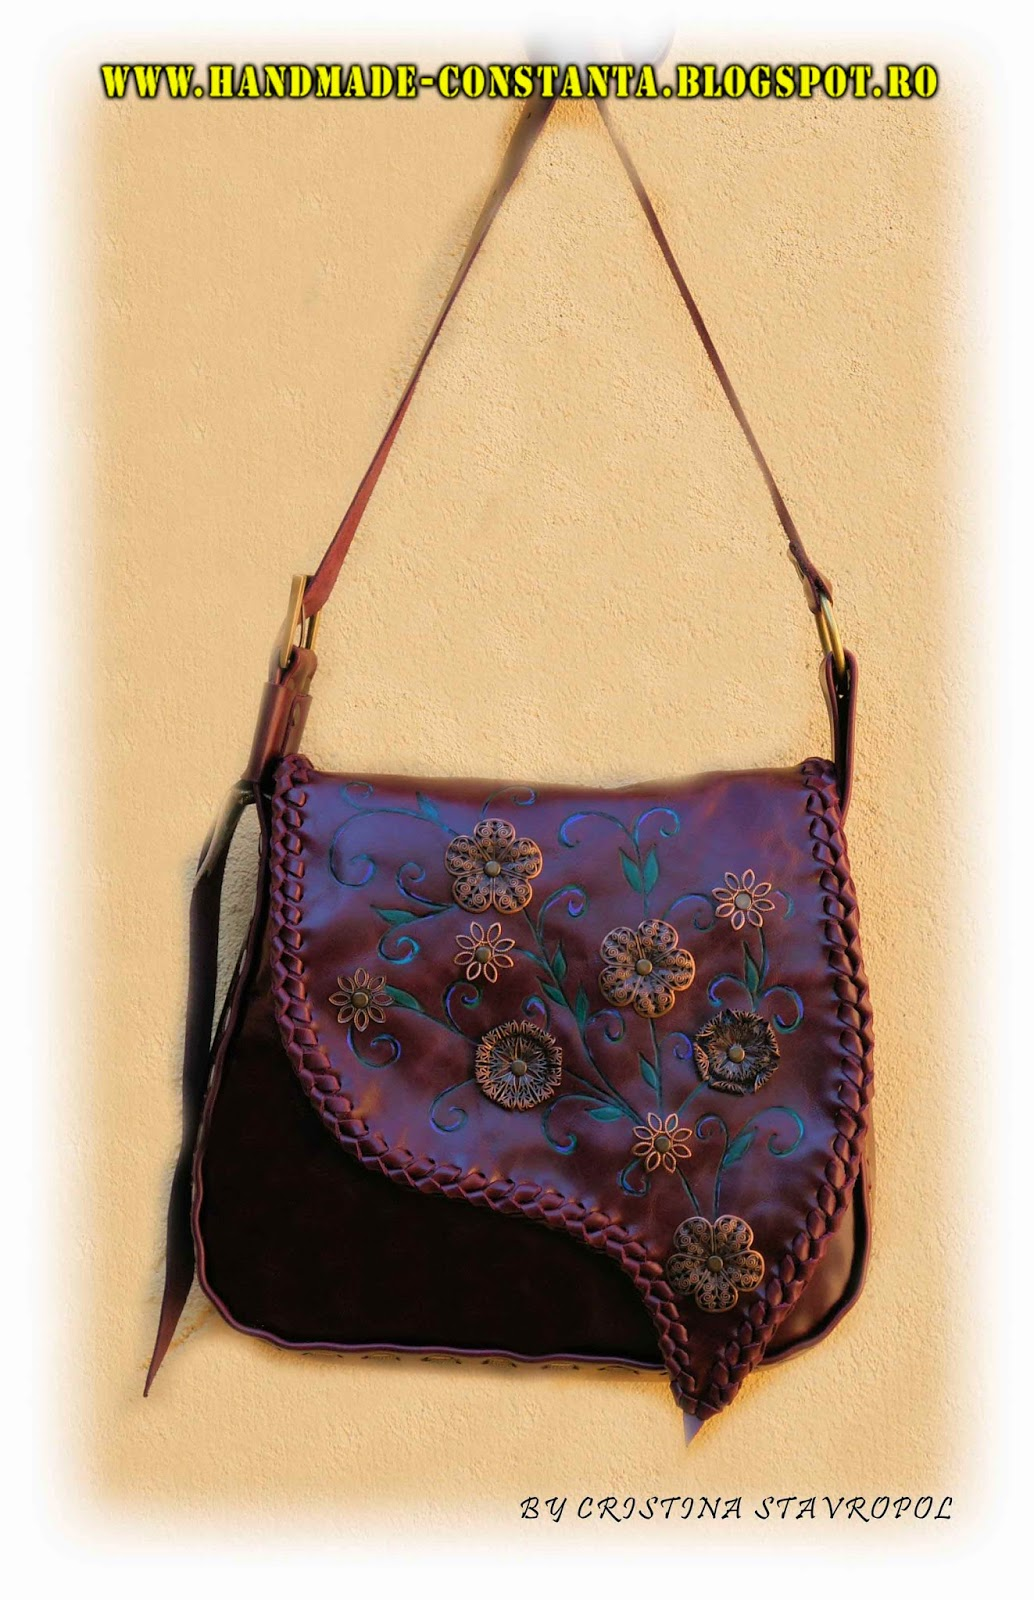 Purple bag, pyrography, applied metal flowers